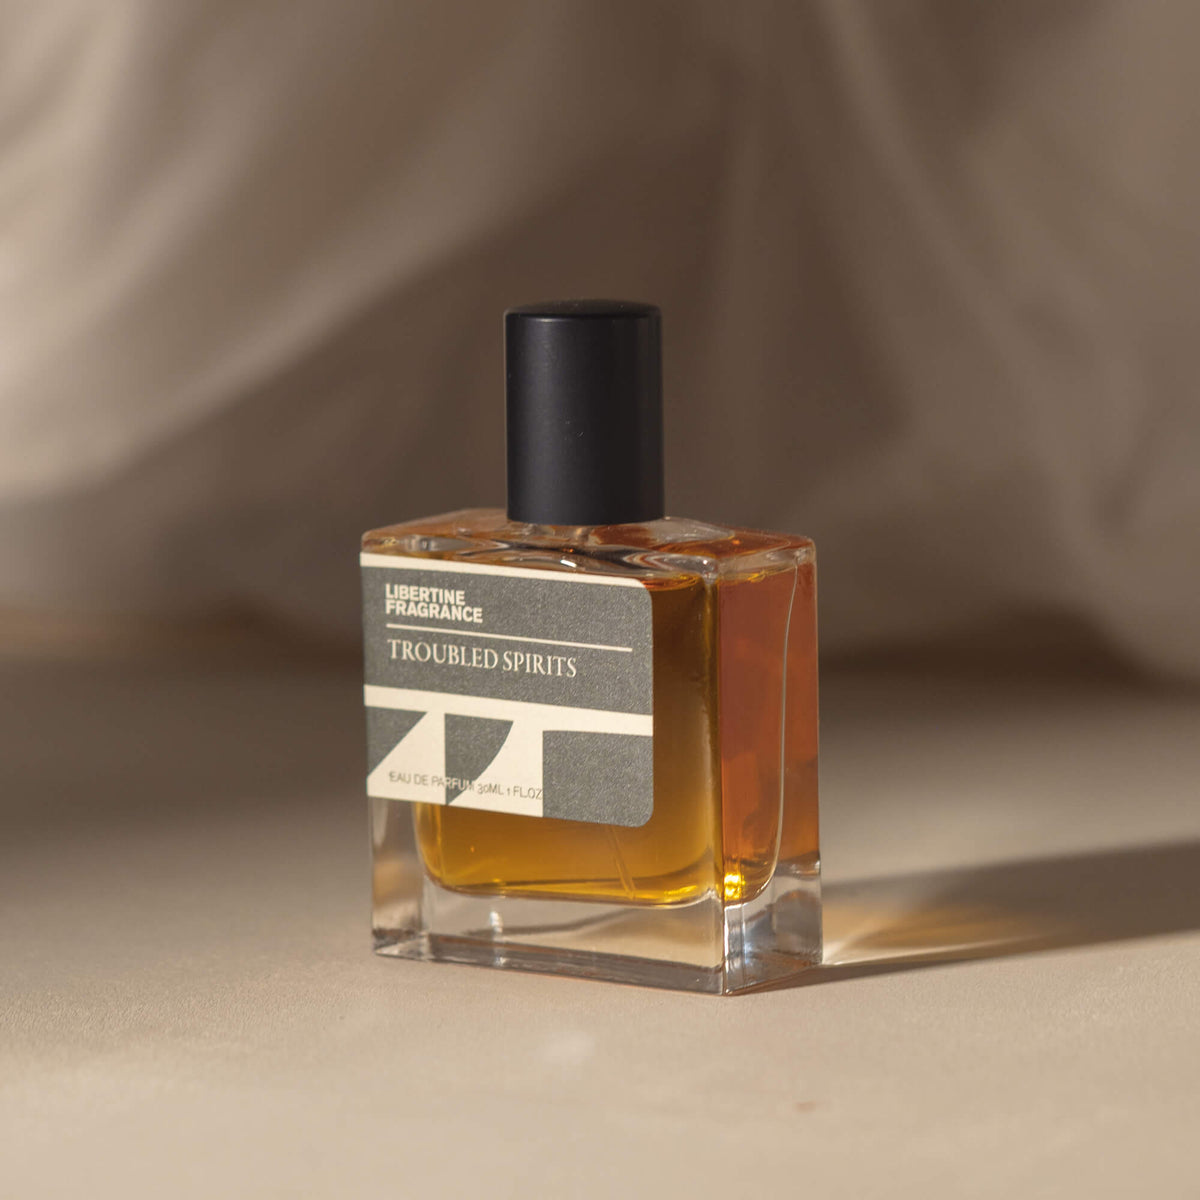 Warm perfume in square bottle standing by minimal packaging